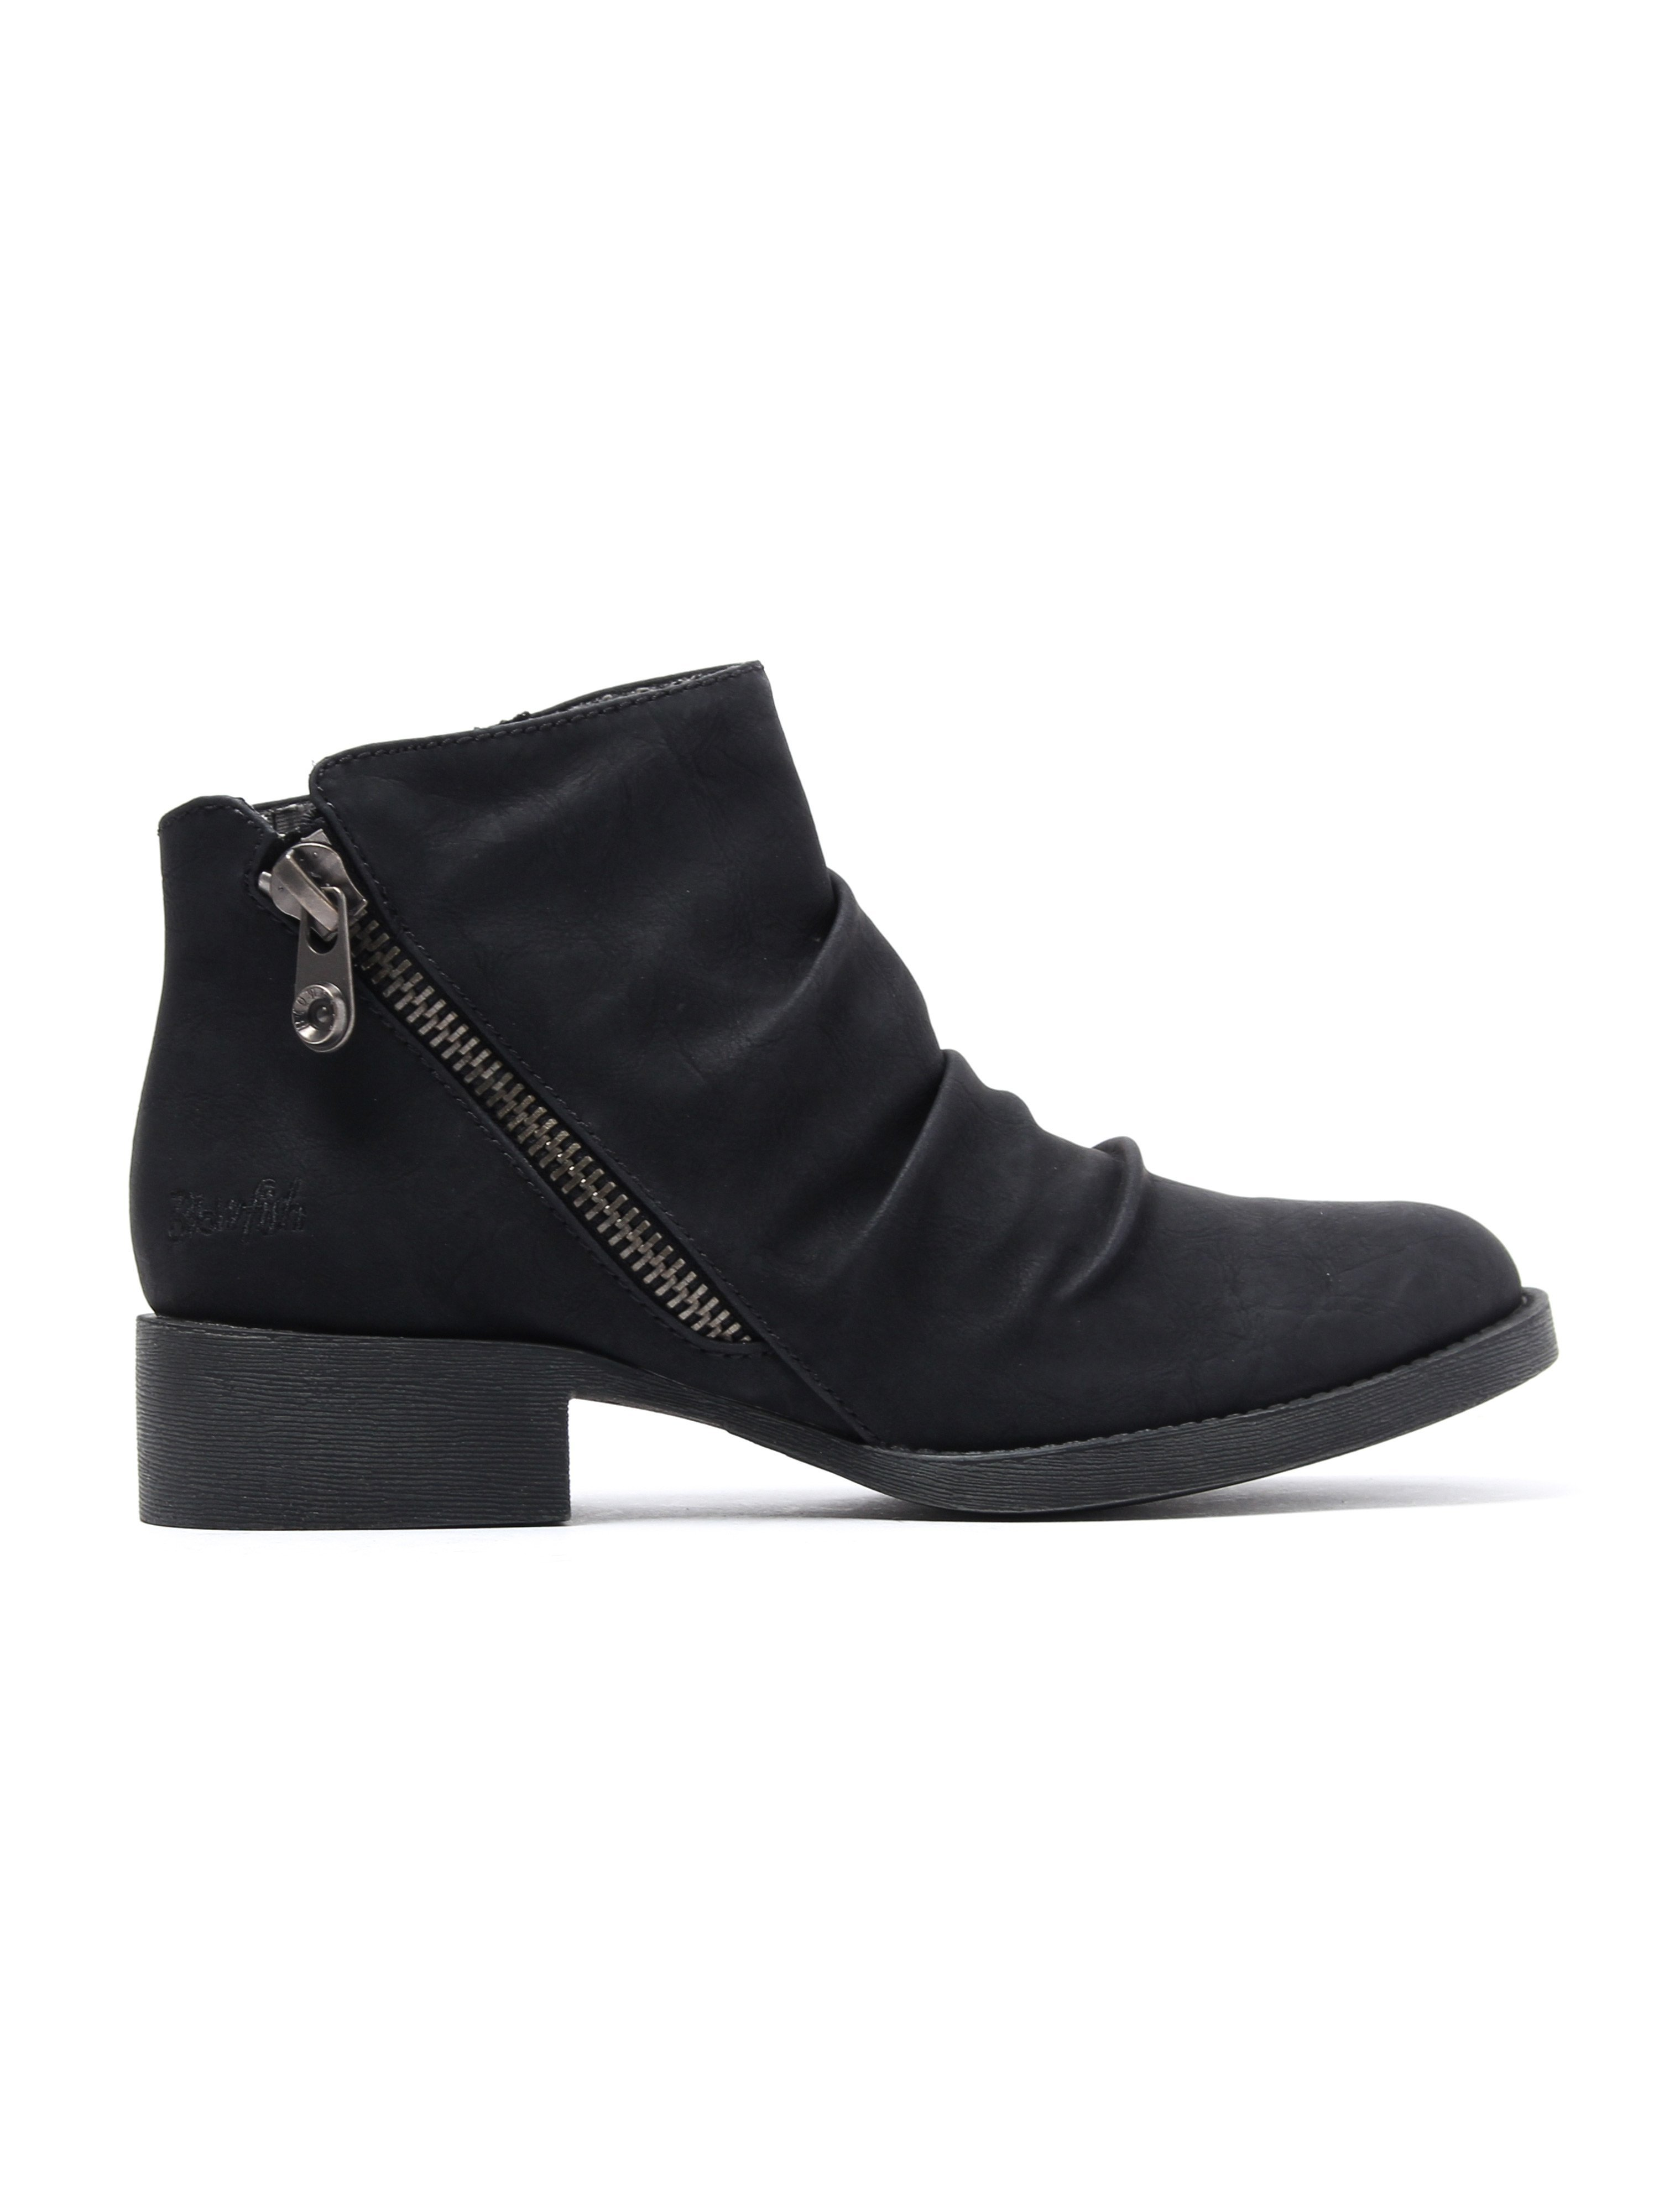 Blowfish Women's Kimm Ankle Boots - Black Texas